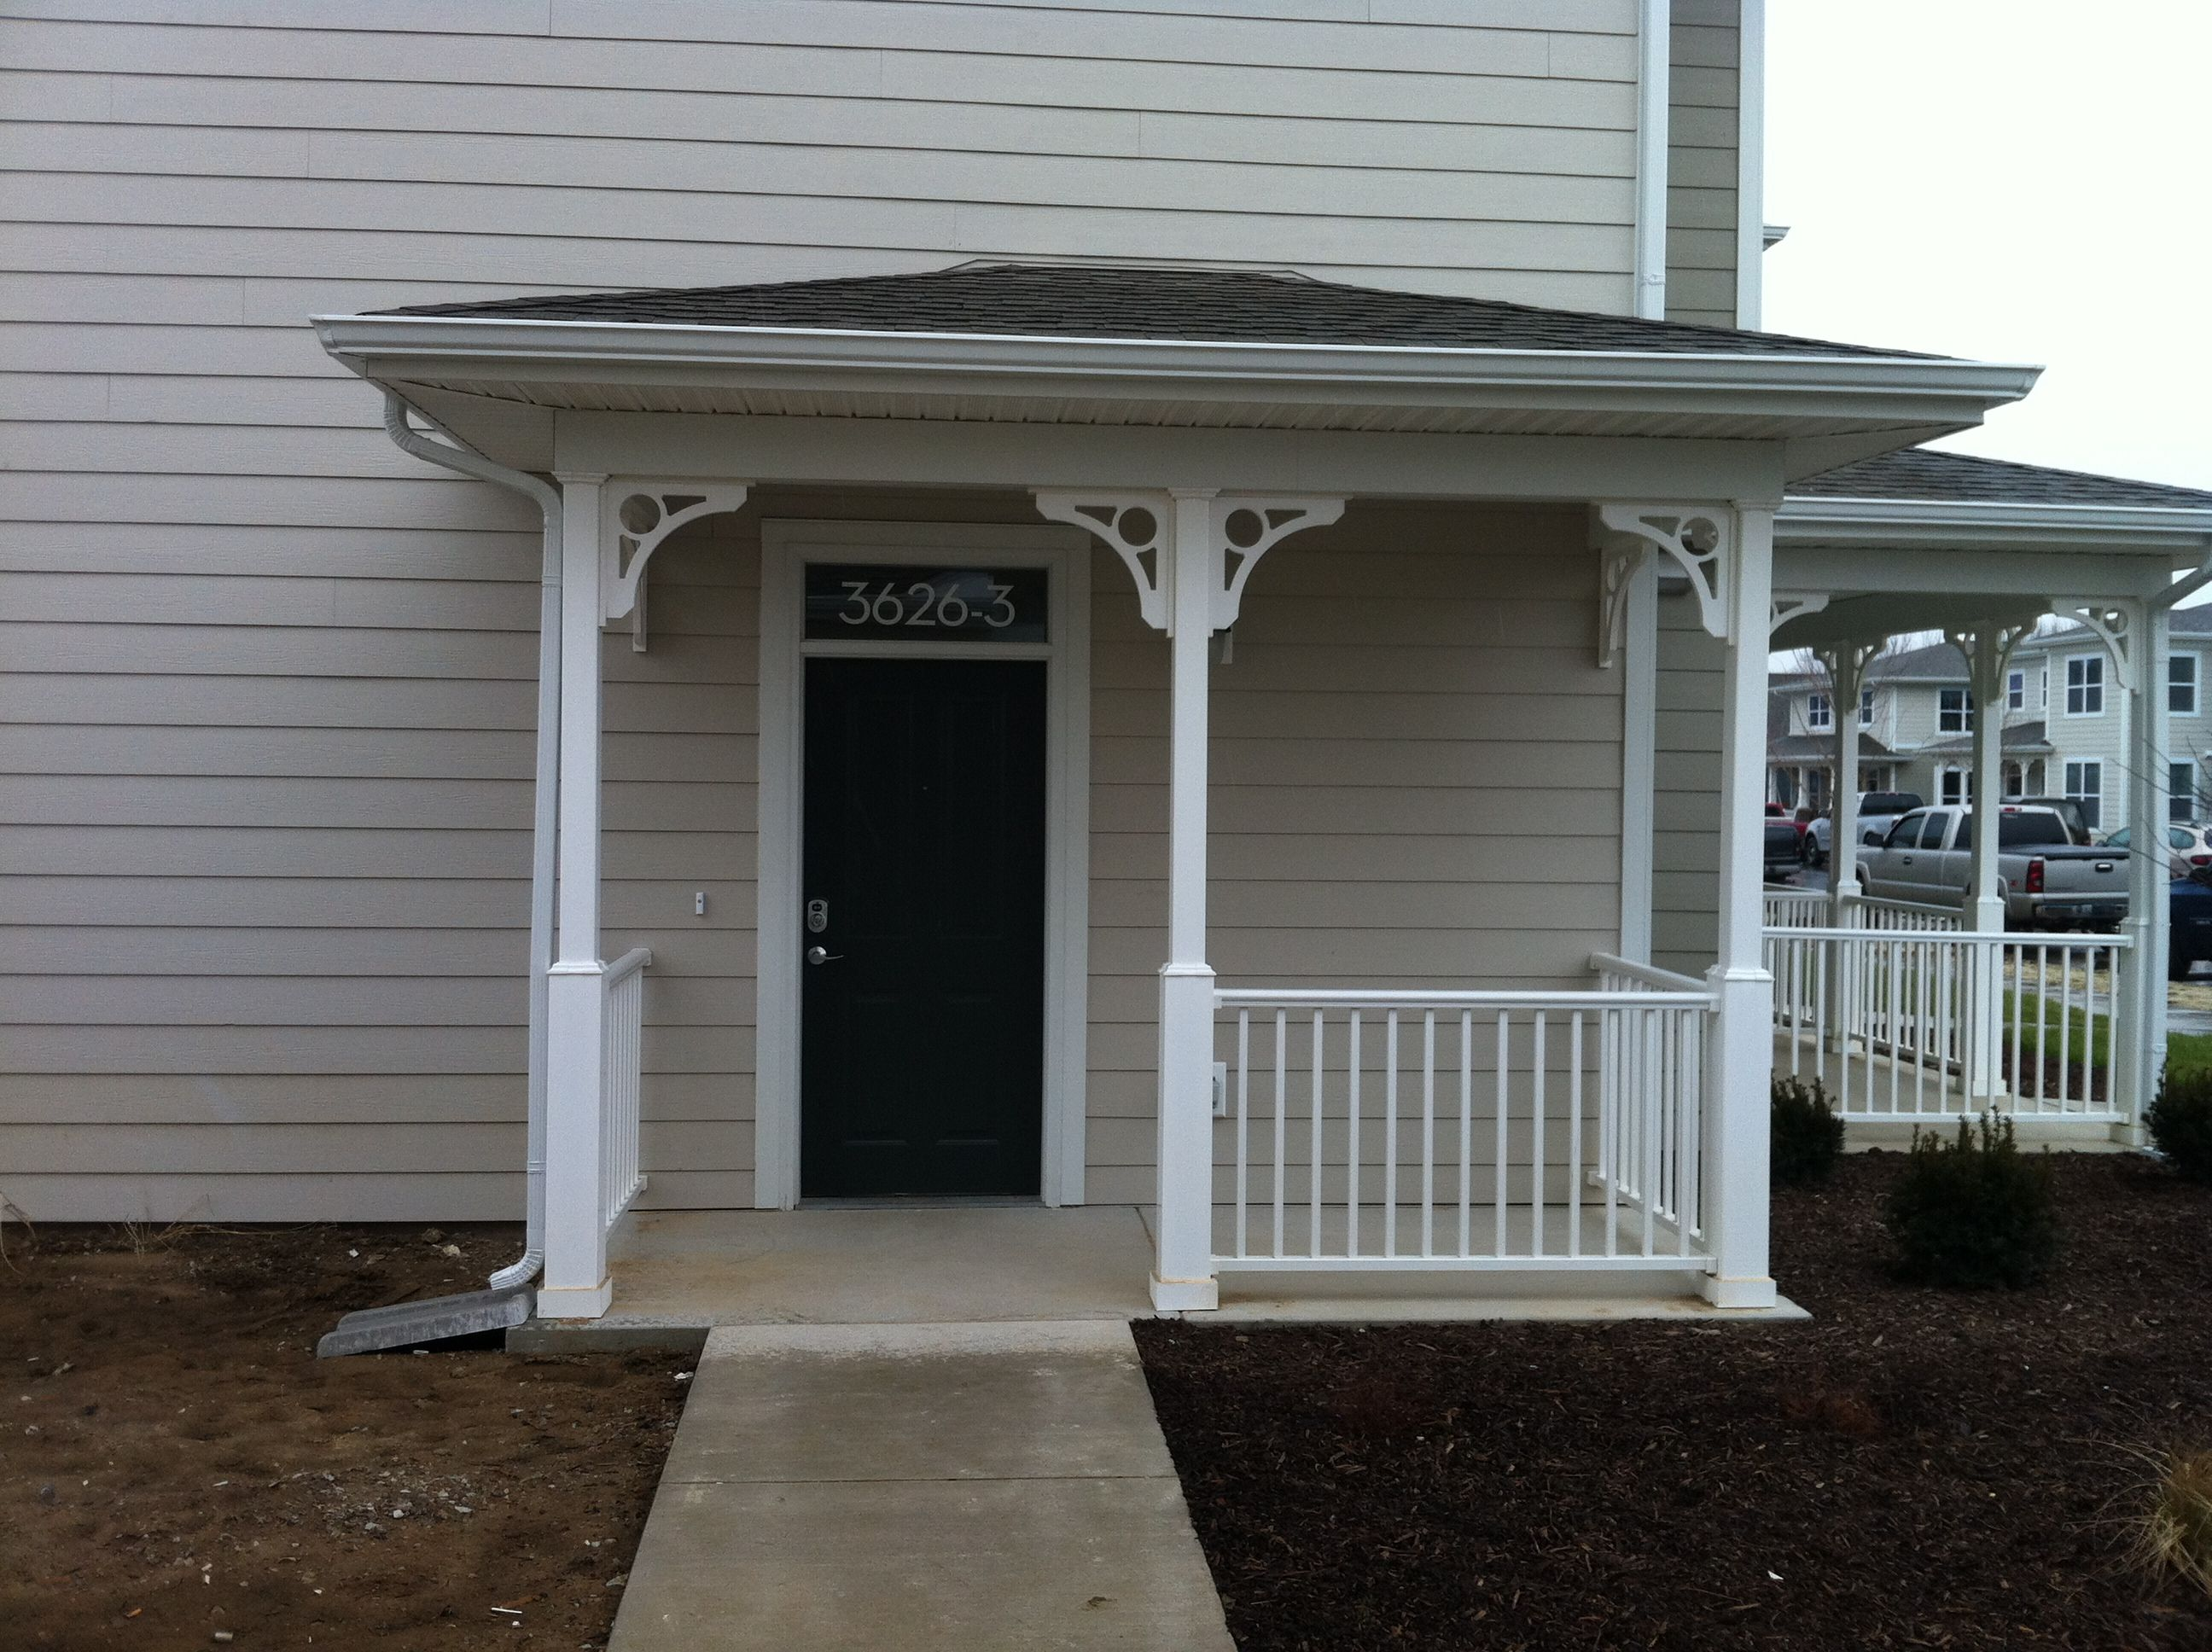 porch steps ranch chester tag medical designs plans size hours tags port railing stairs of directions with ideas mobile house decks for store design pictures swings and full home porches homes front brackets